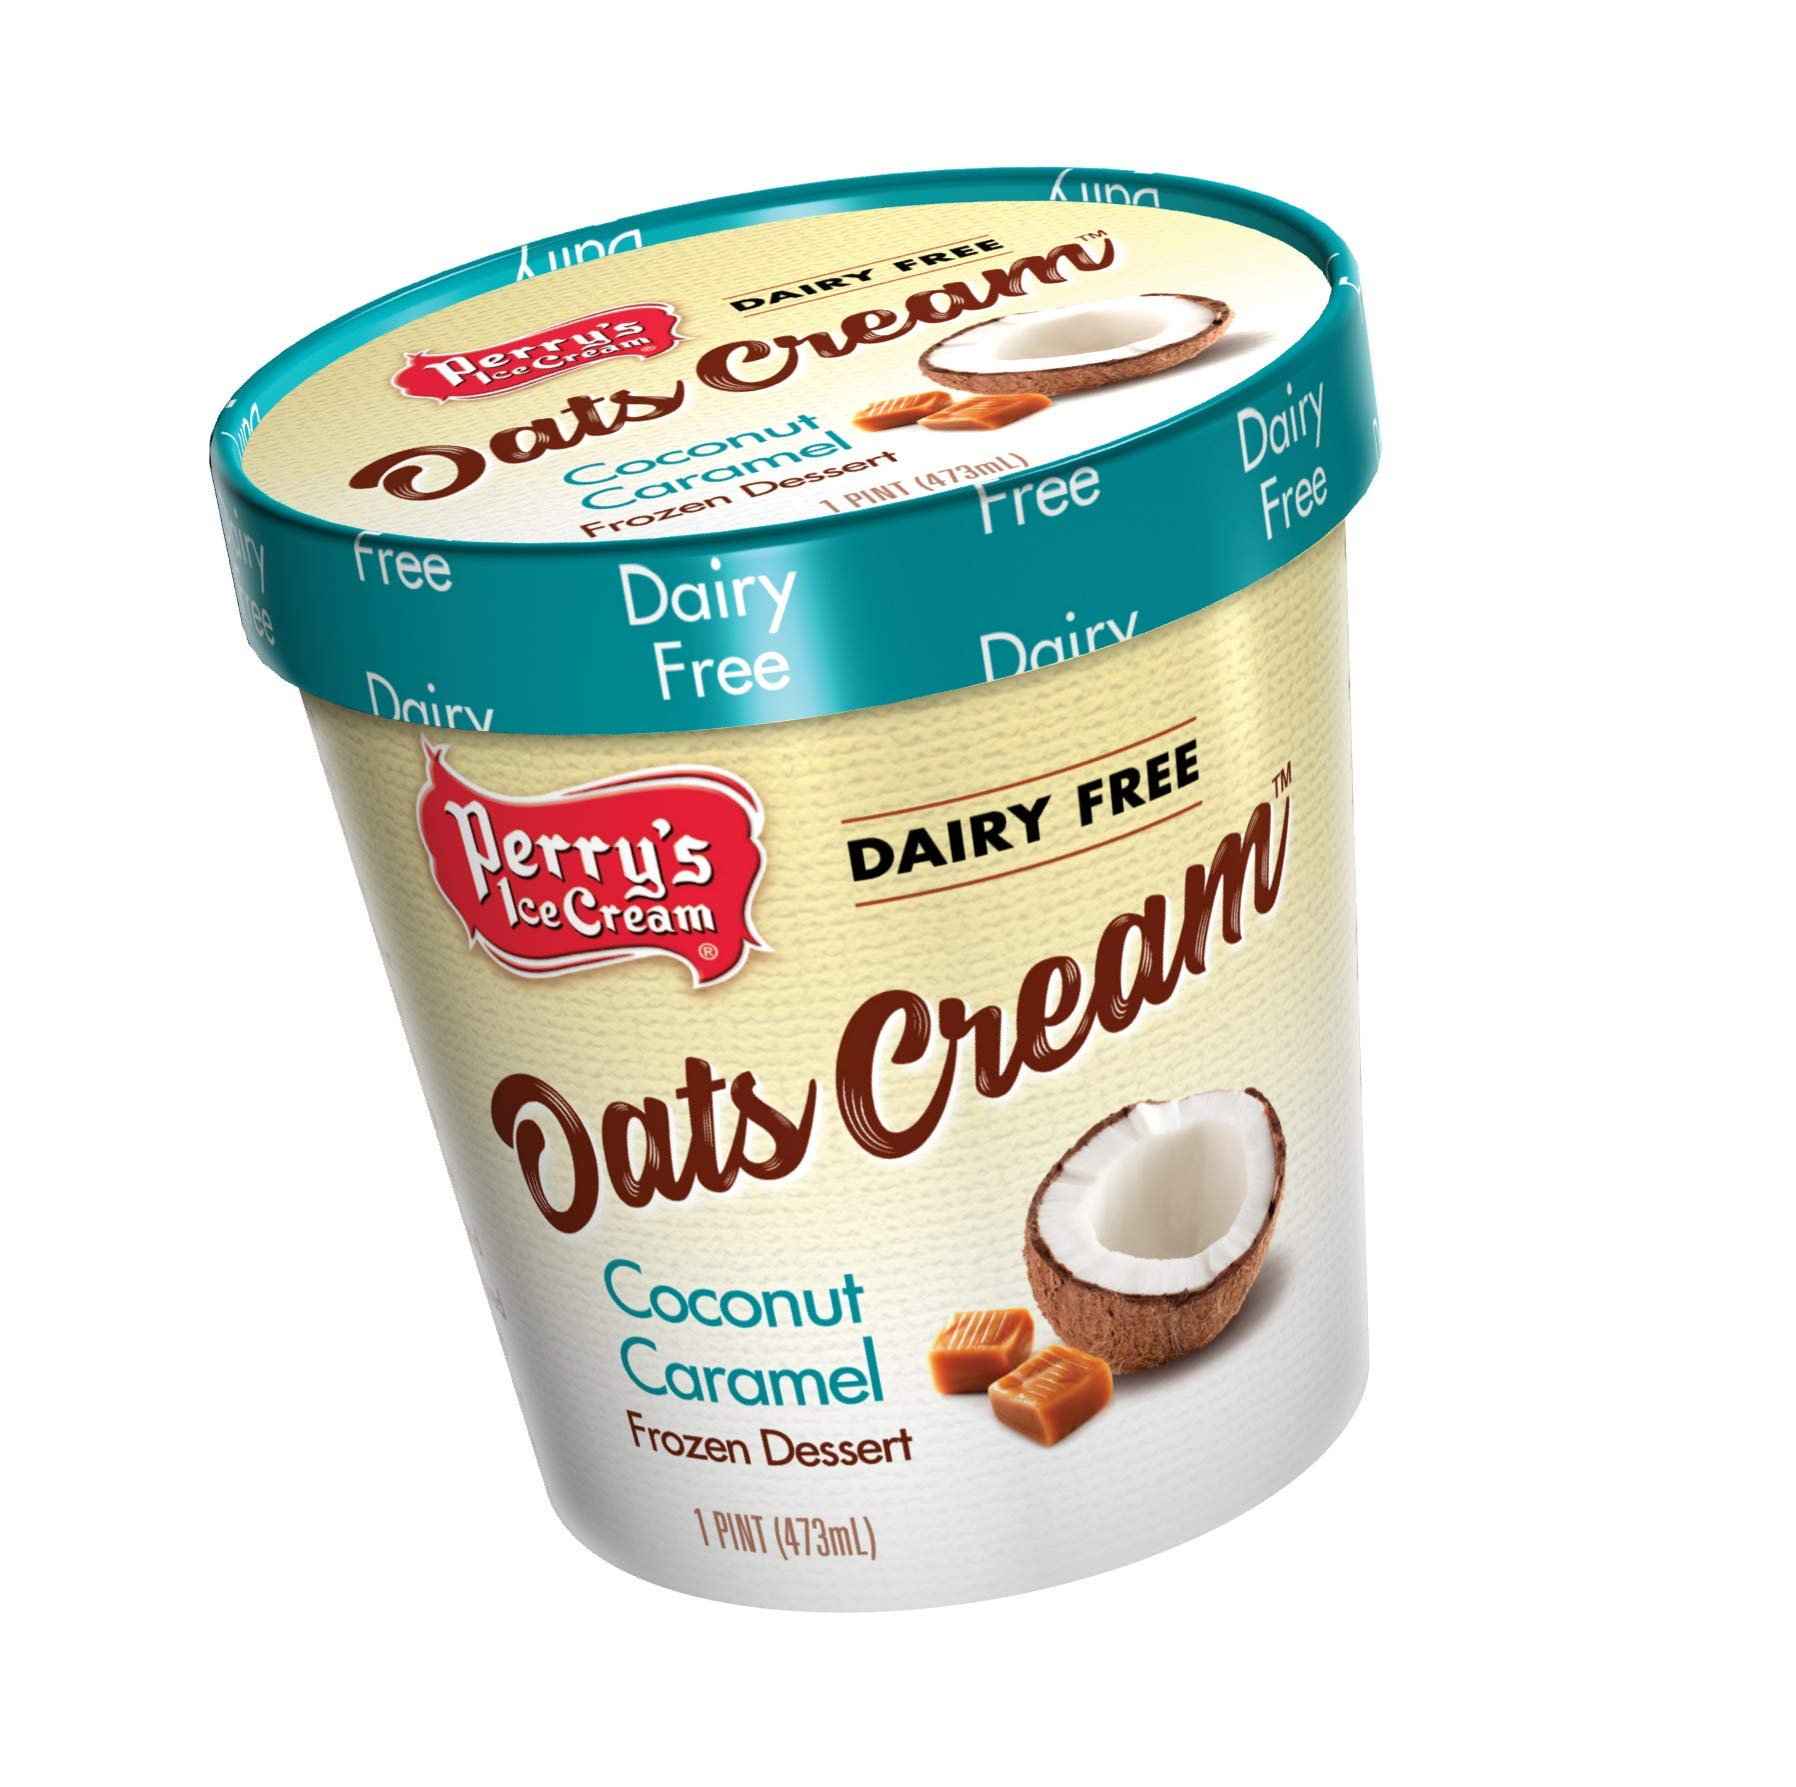 Perry's Ice Cream, Pint, Oats Cream, Coconut Caramel - Pack of 8